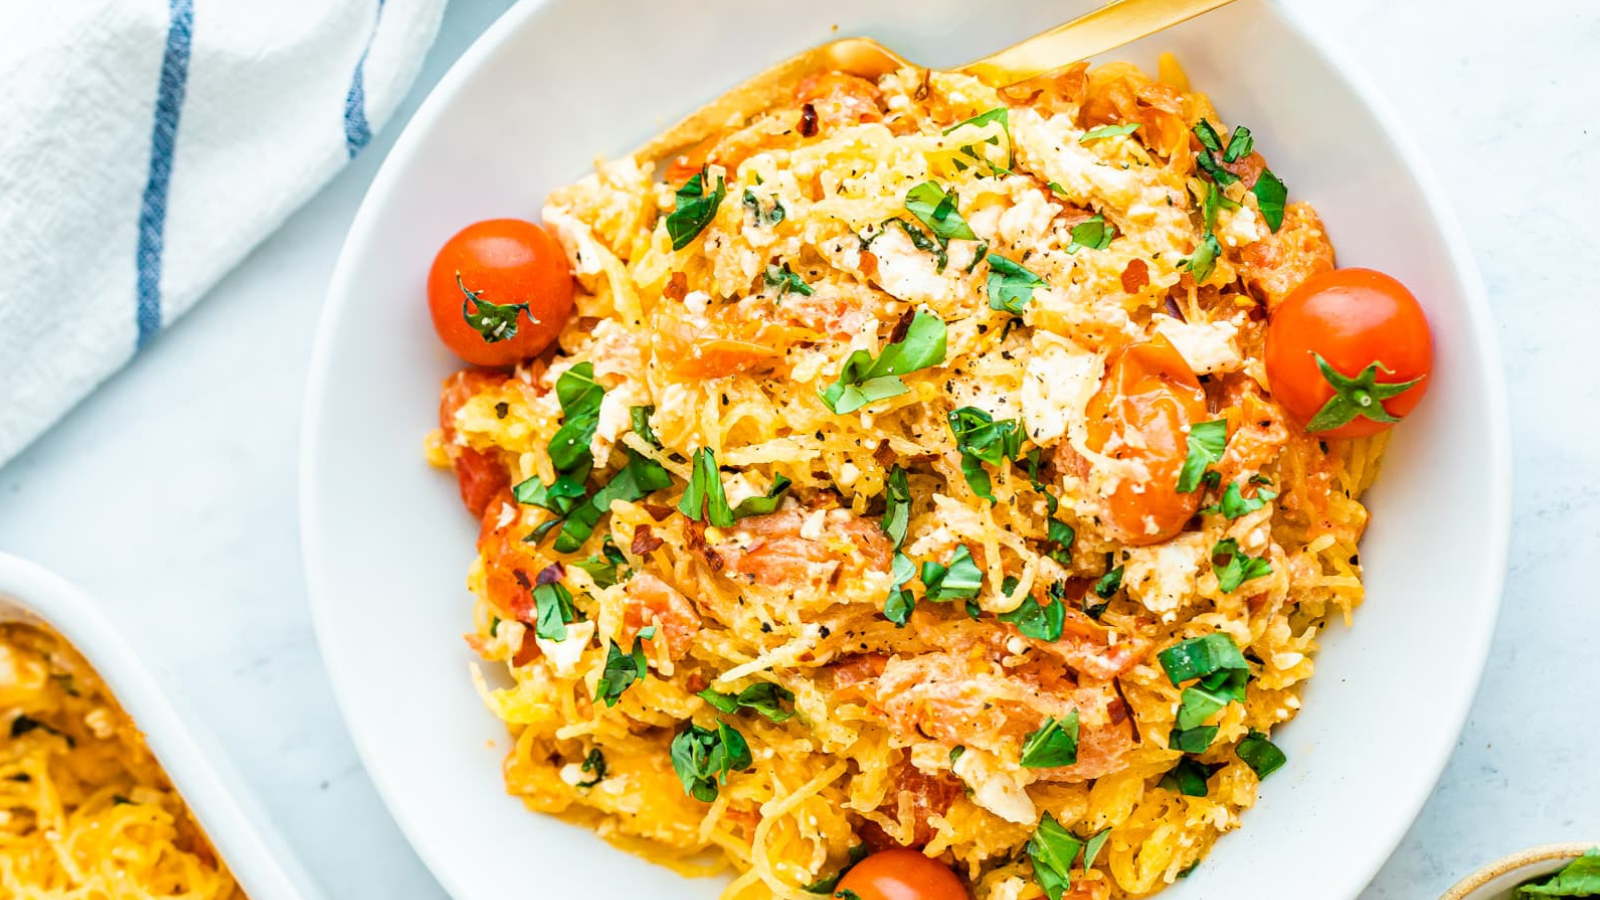 Baked feta with spaghetti squash on a plate.